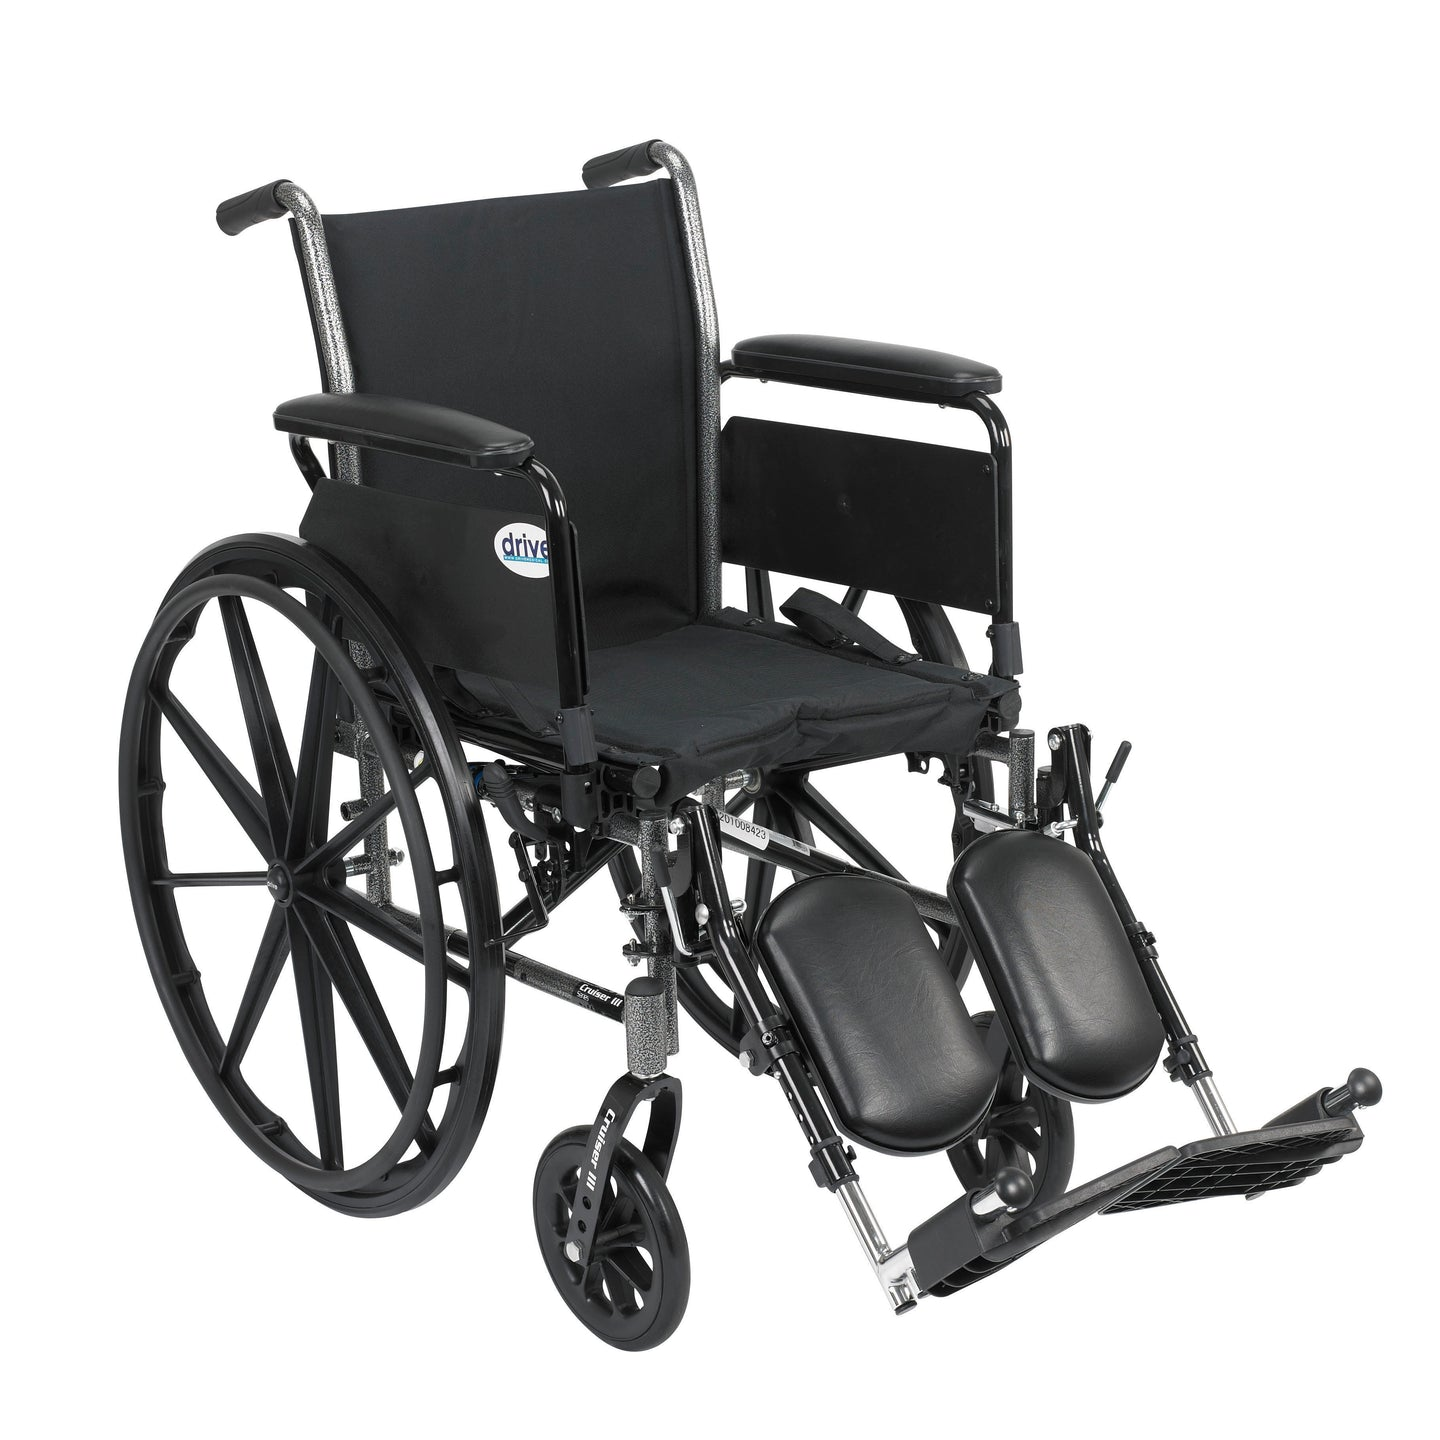 Drive Cruiser III Light Weight Wheelchair with Flip Back Removable Arms- Full Arms- Elevating Leg Rests- 16